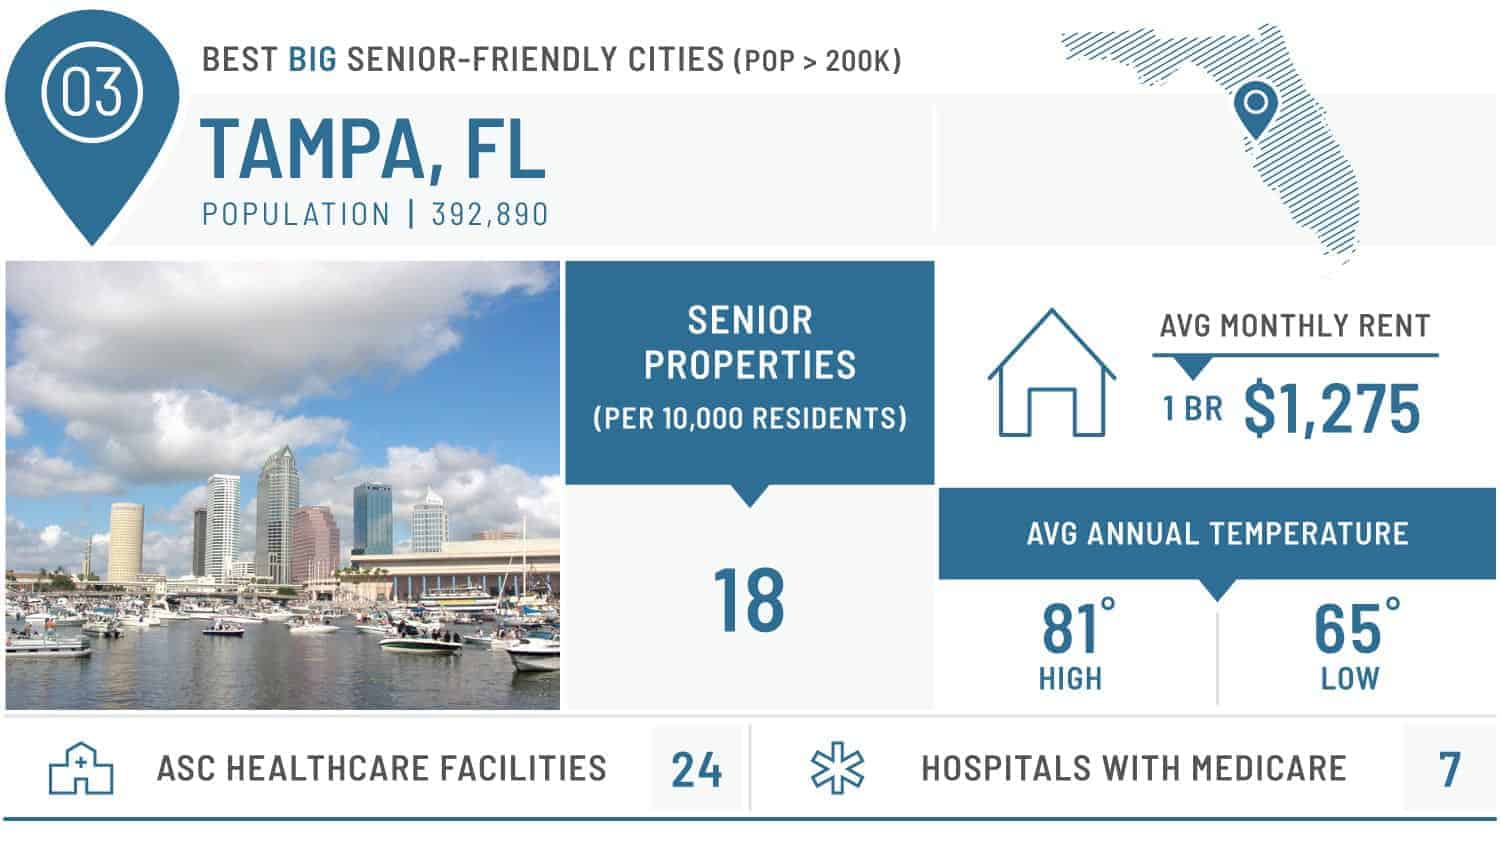 visual of the best large city for seniors - tampa